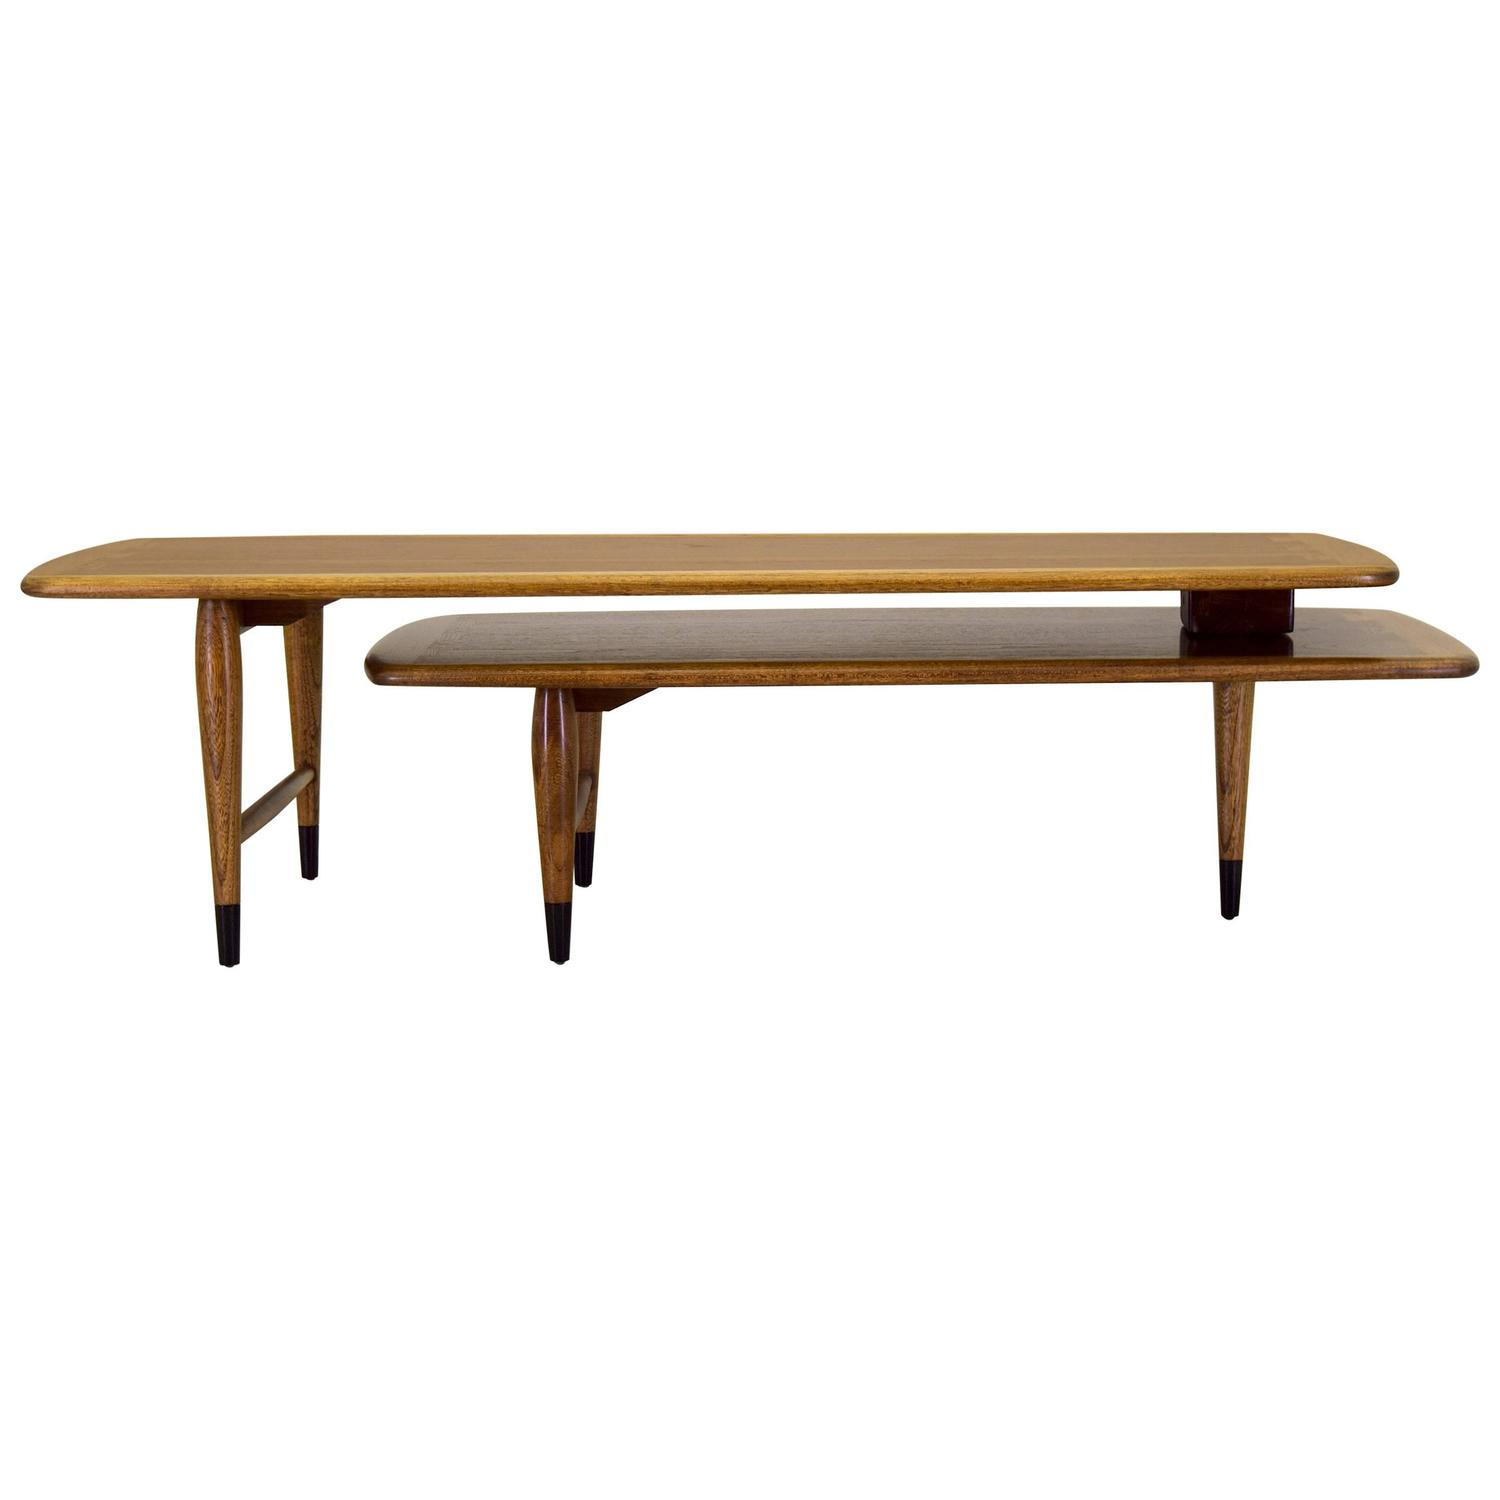 Lane Acclaim Switchblade Articulating Coffee Table in Walnut and